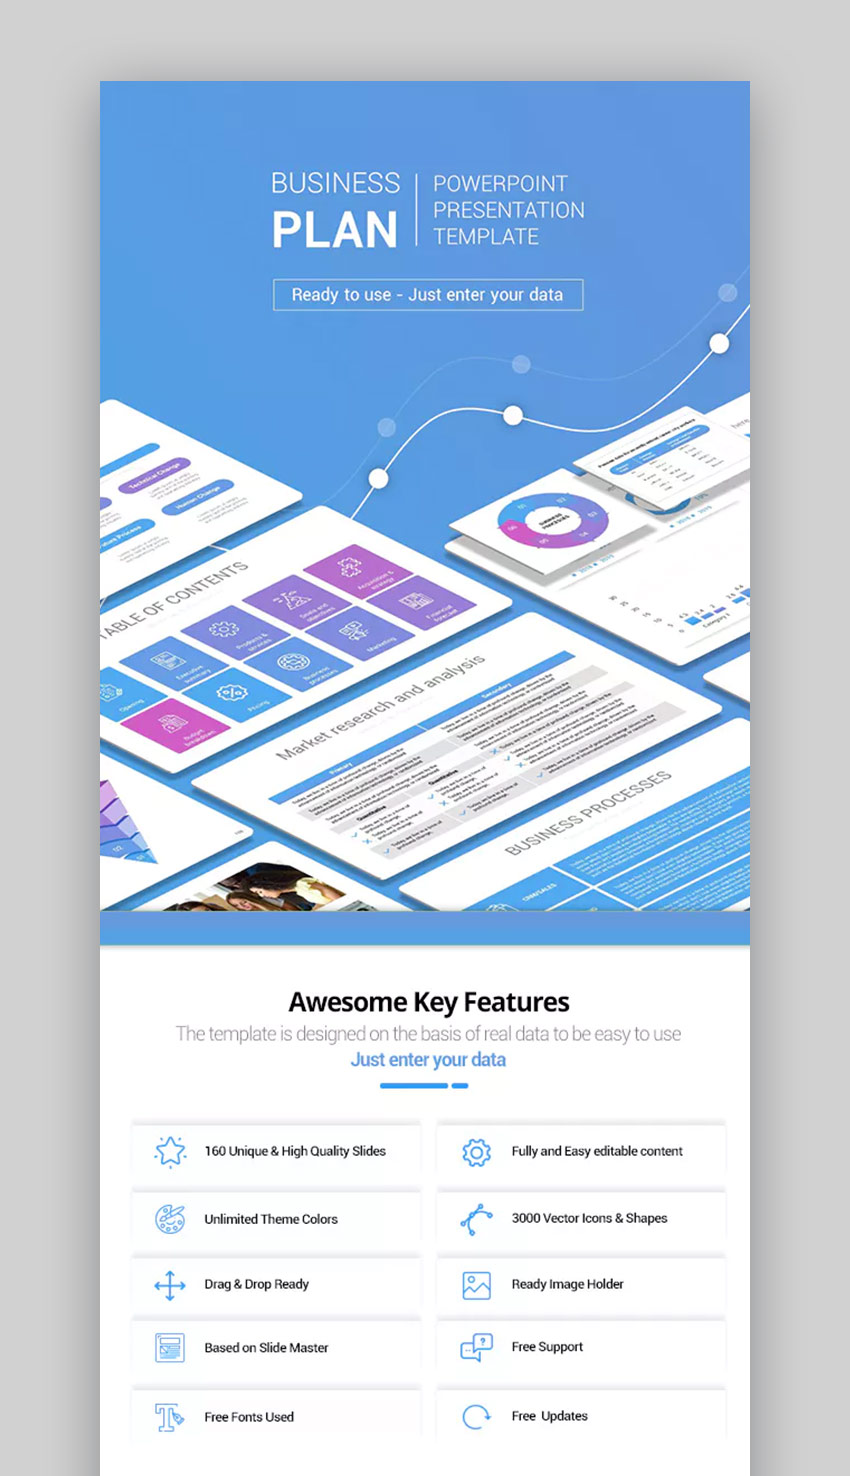 25 Marketing Powerpoint Templates Best Ppts To Present Your